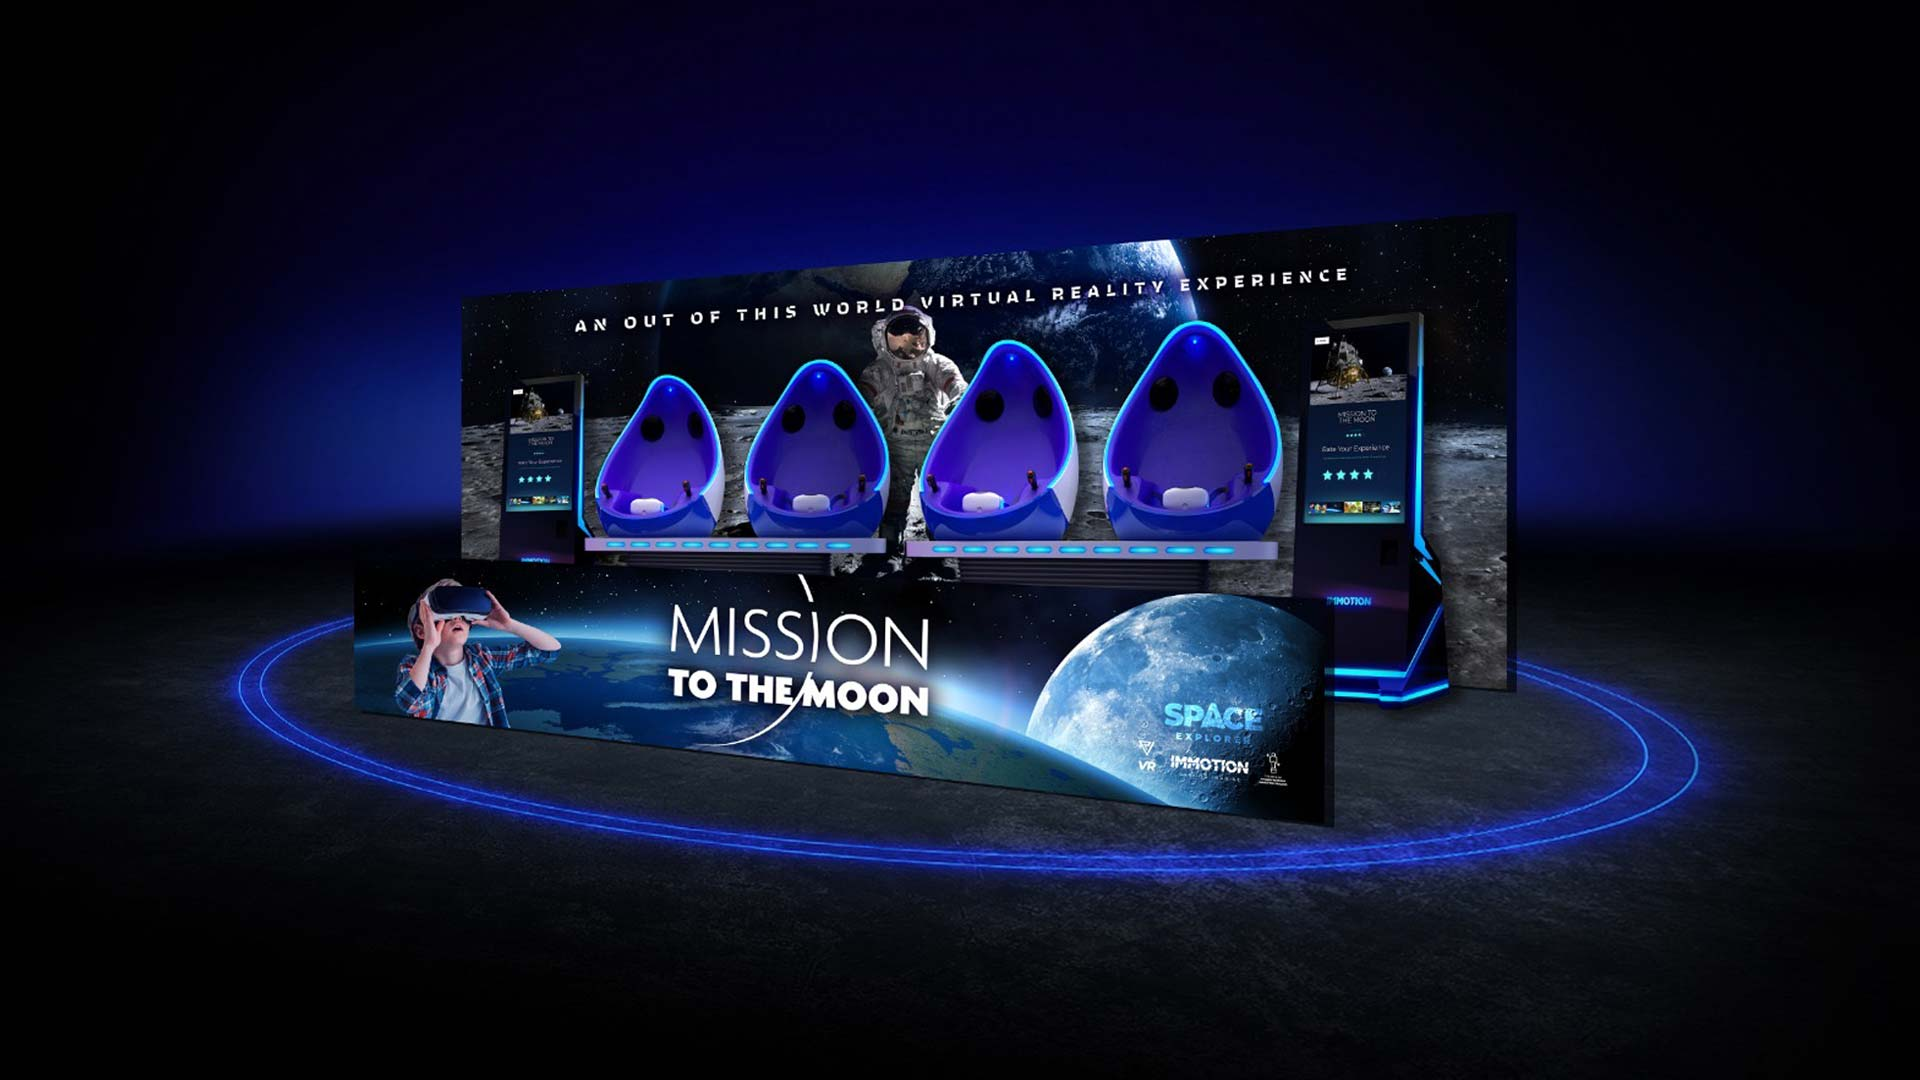 Immotion-Virtual-Reality-175-Moon-4-Seat